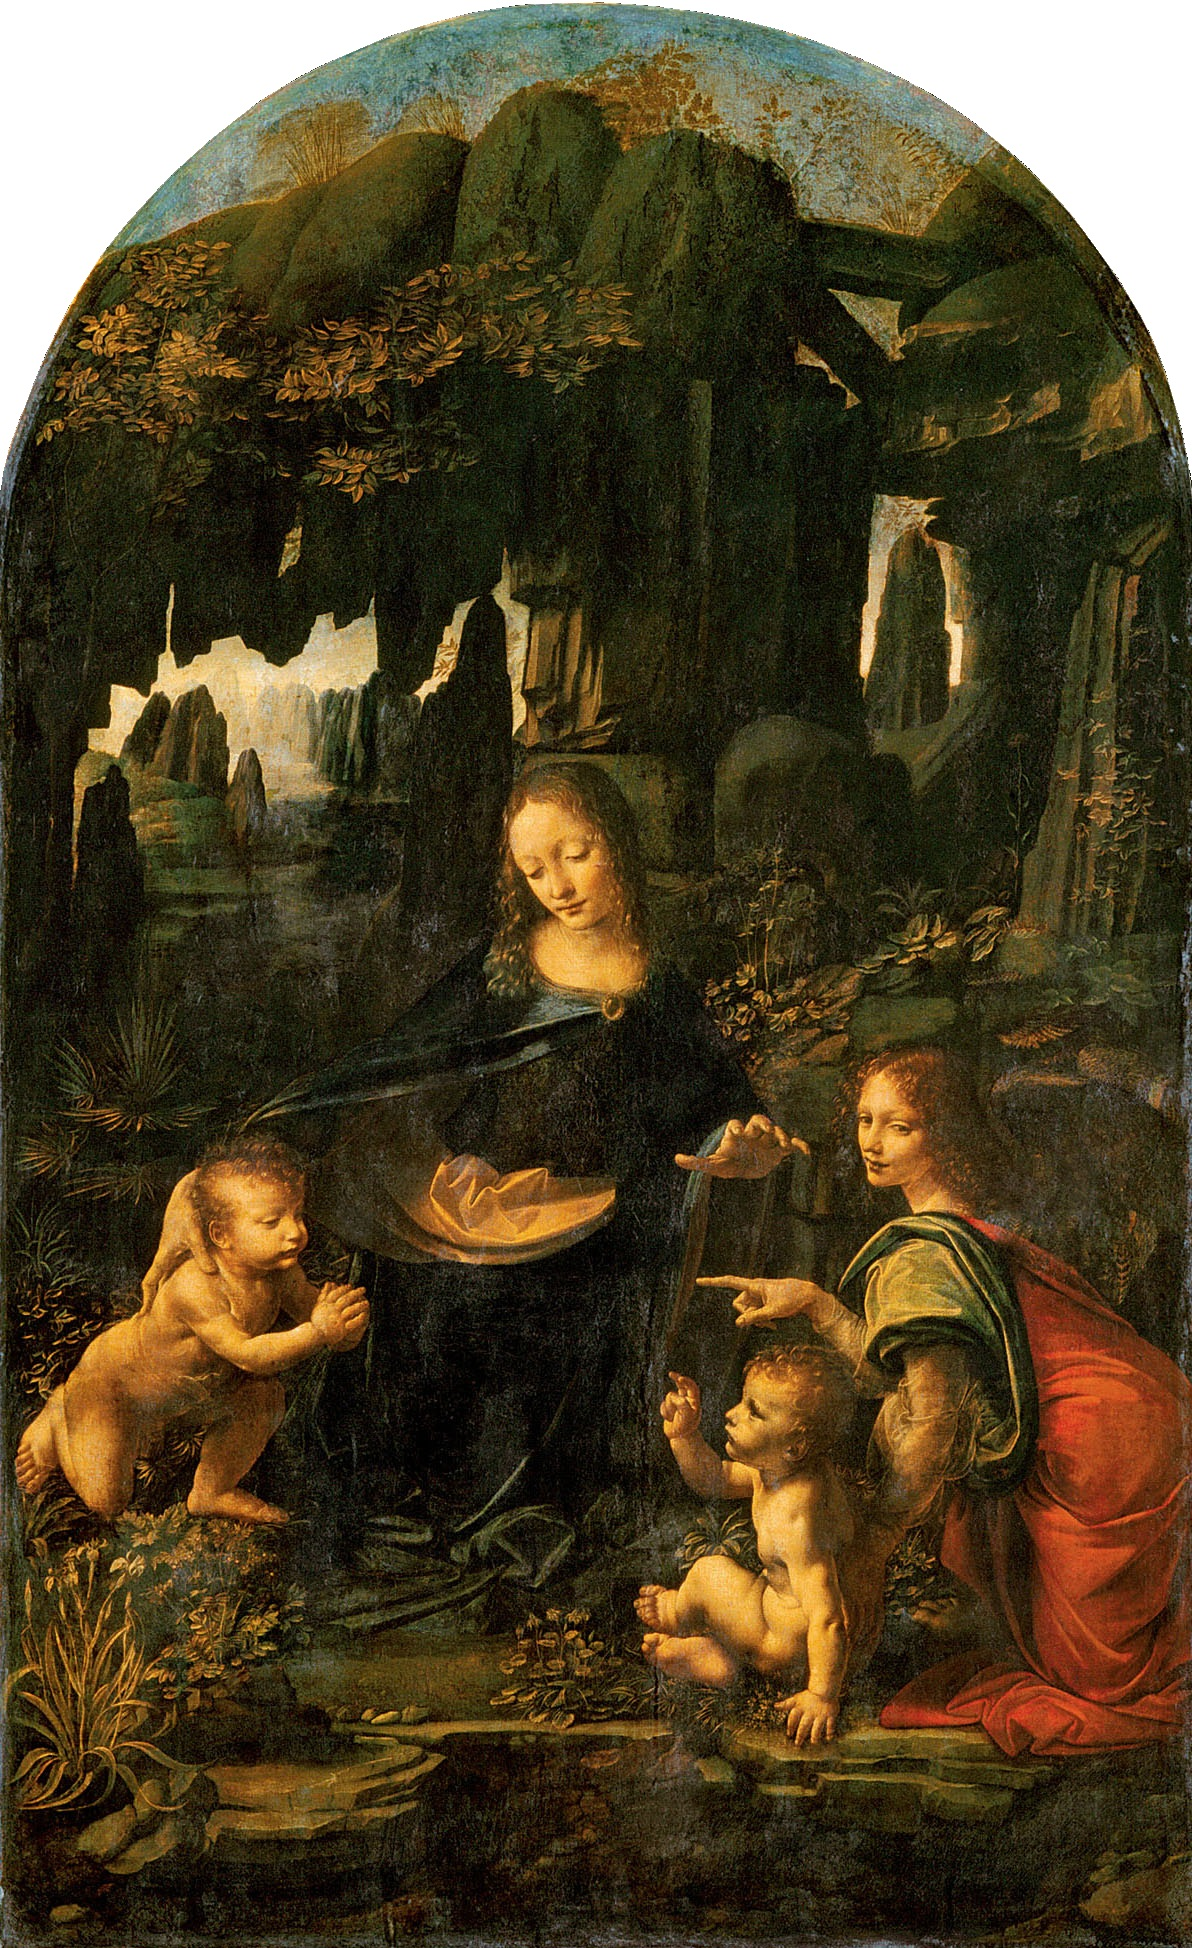 Leonardo_da_Vinci_-_Virgin_of_the_Rocks_